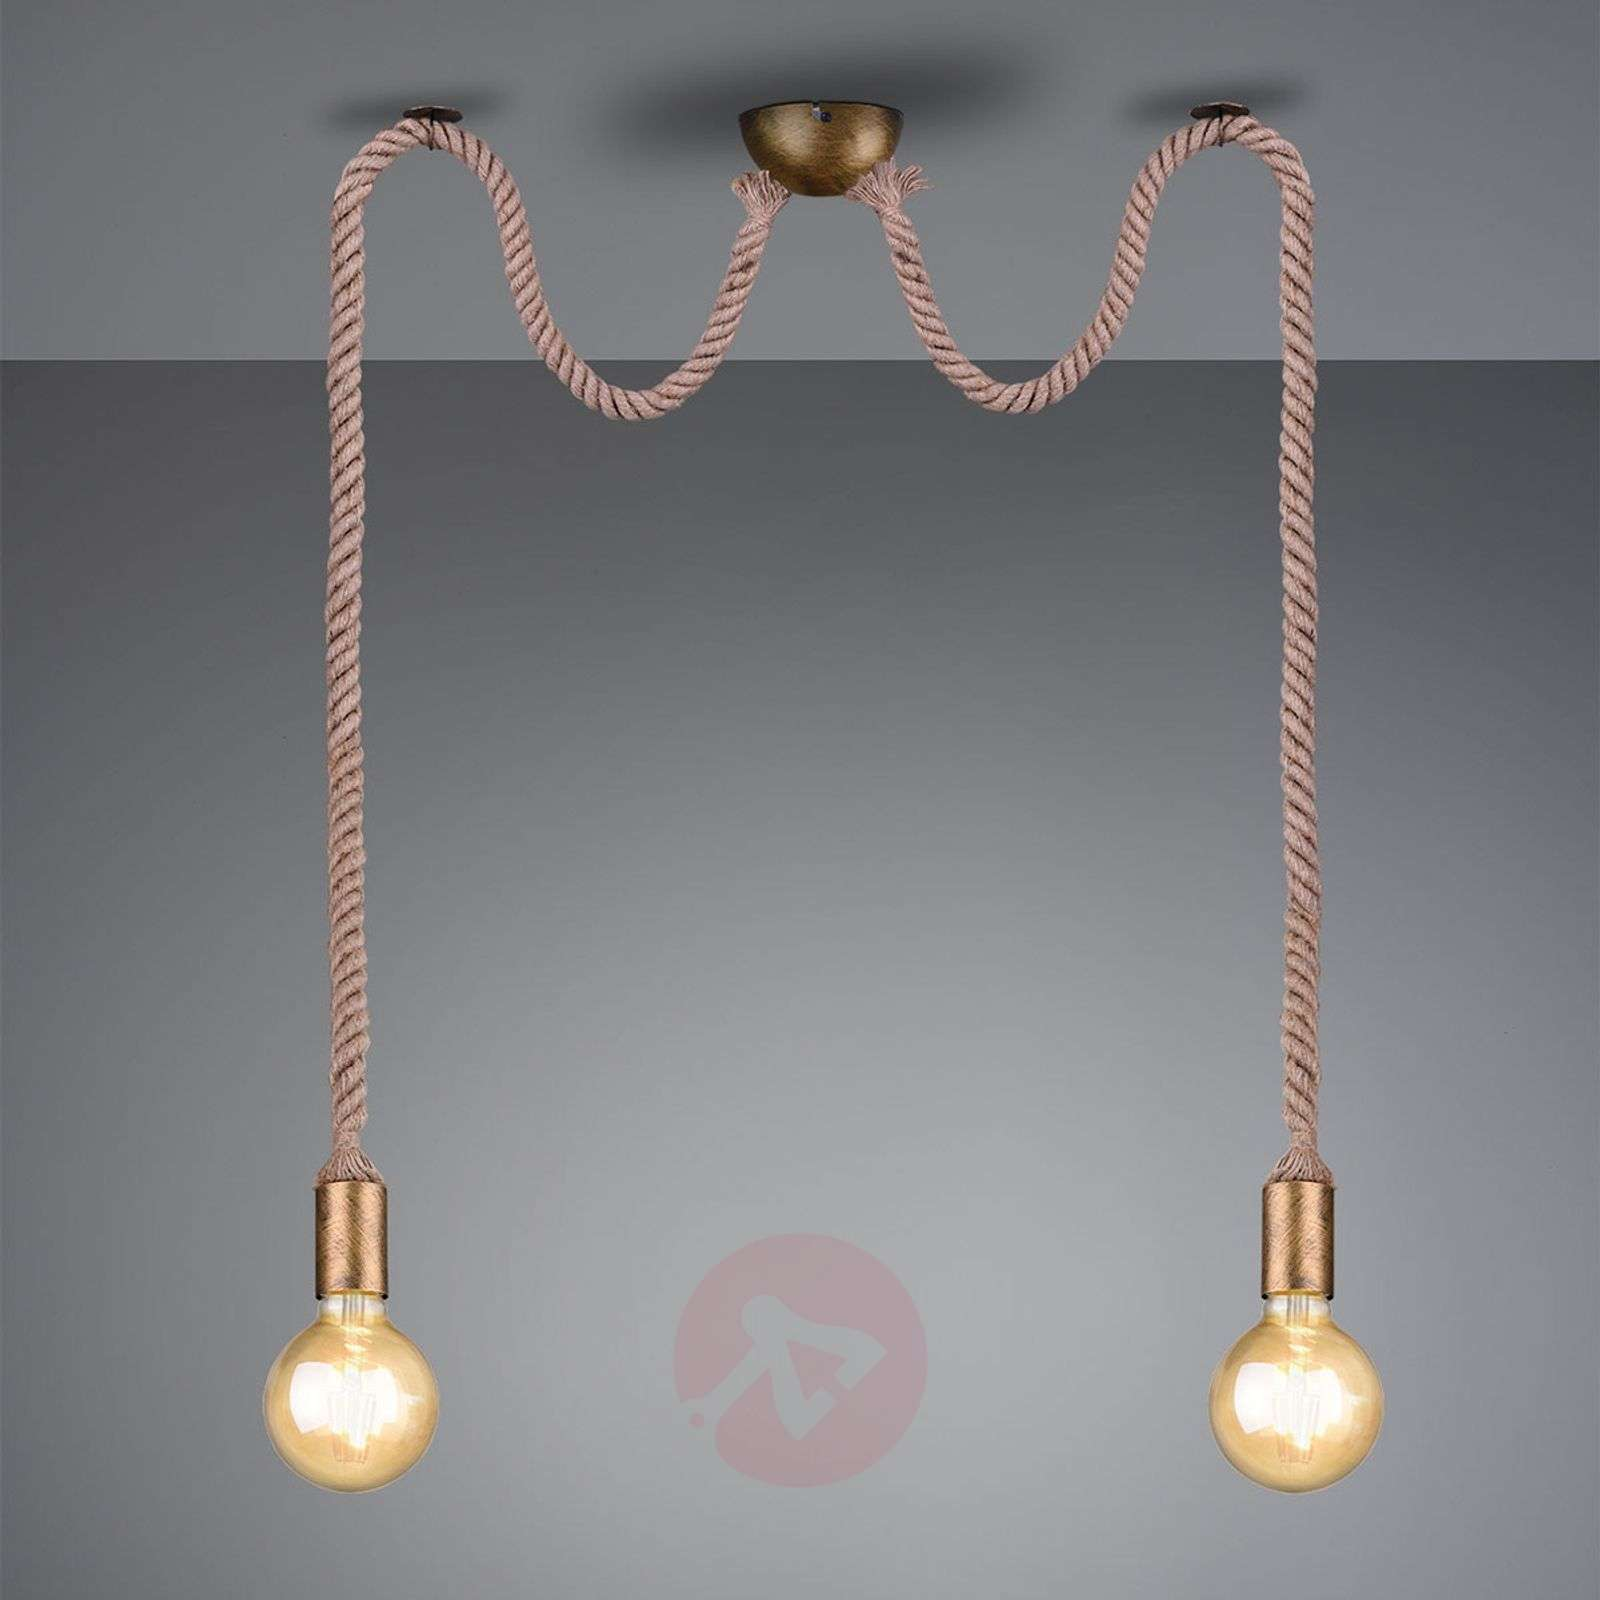 Rope pendant lamp with a decorative rope, 2-bulb